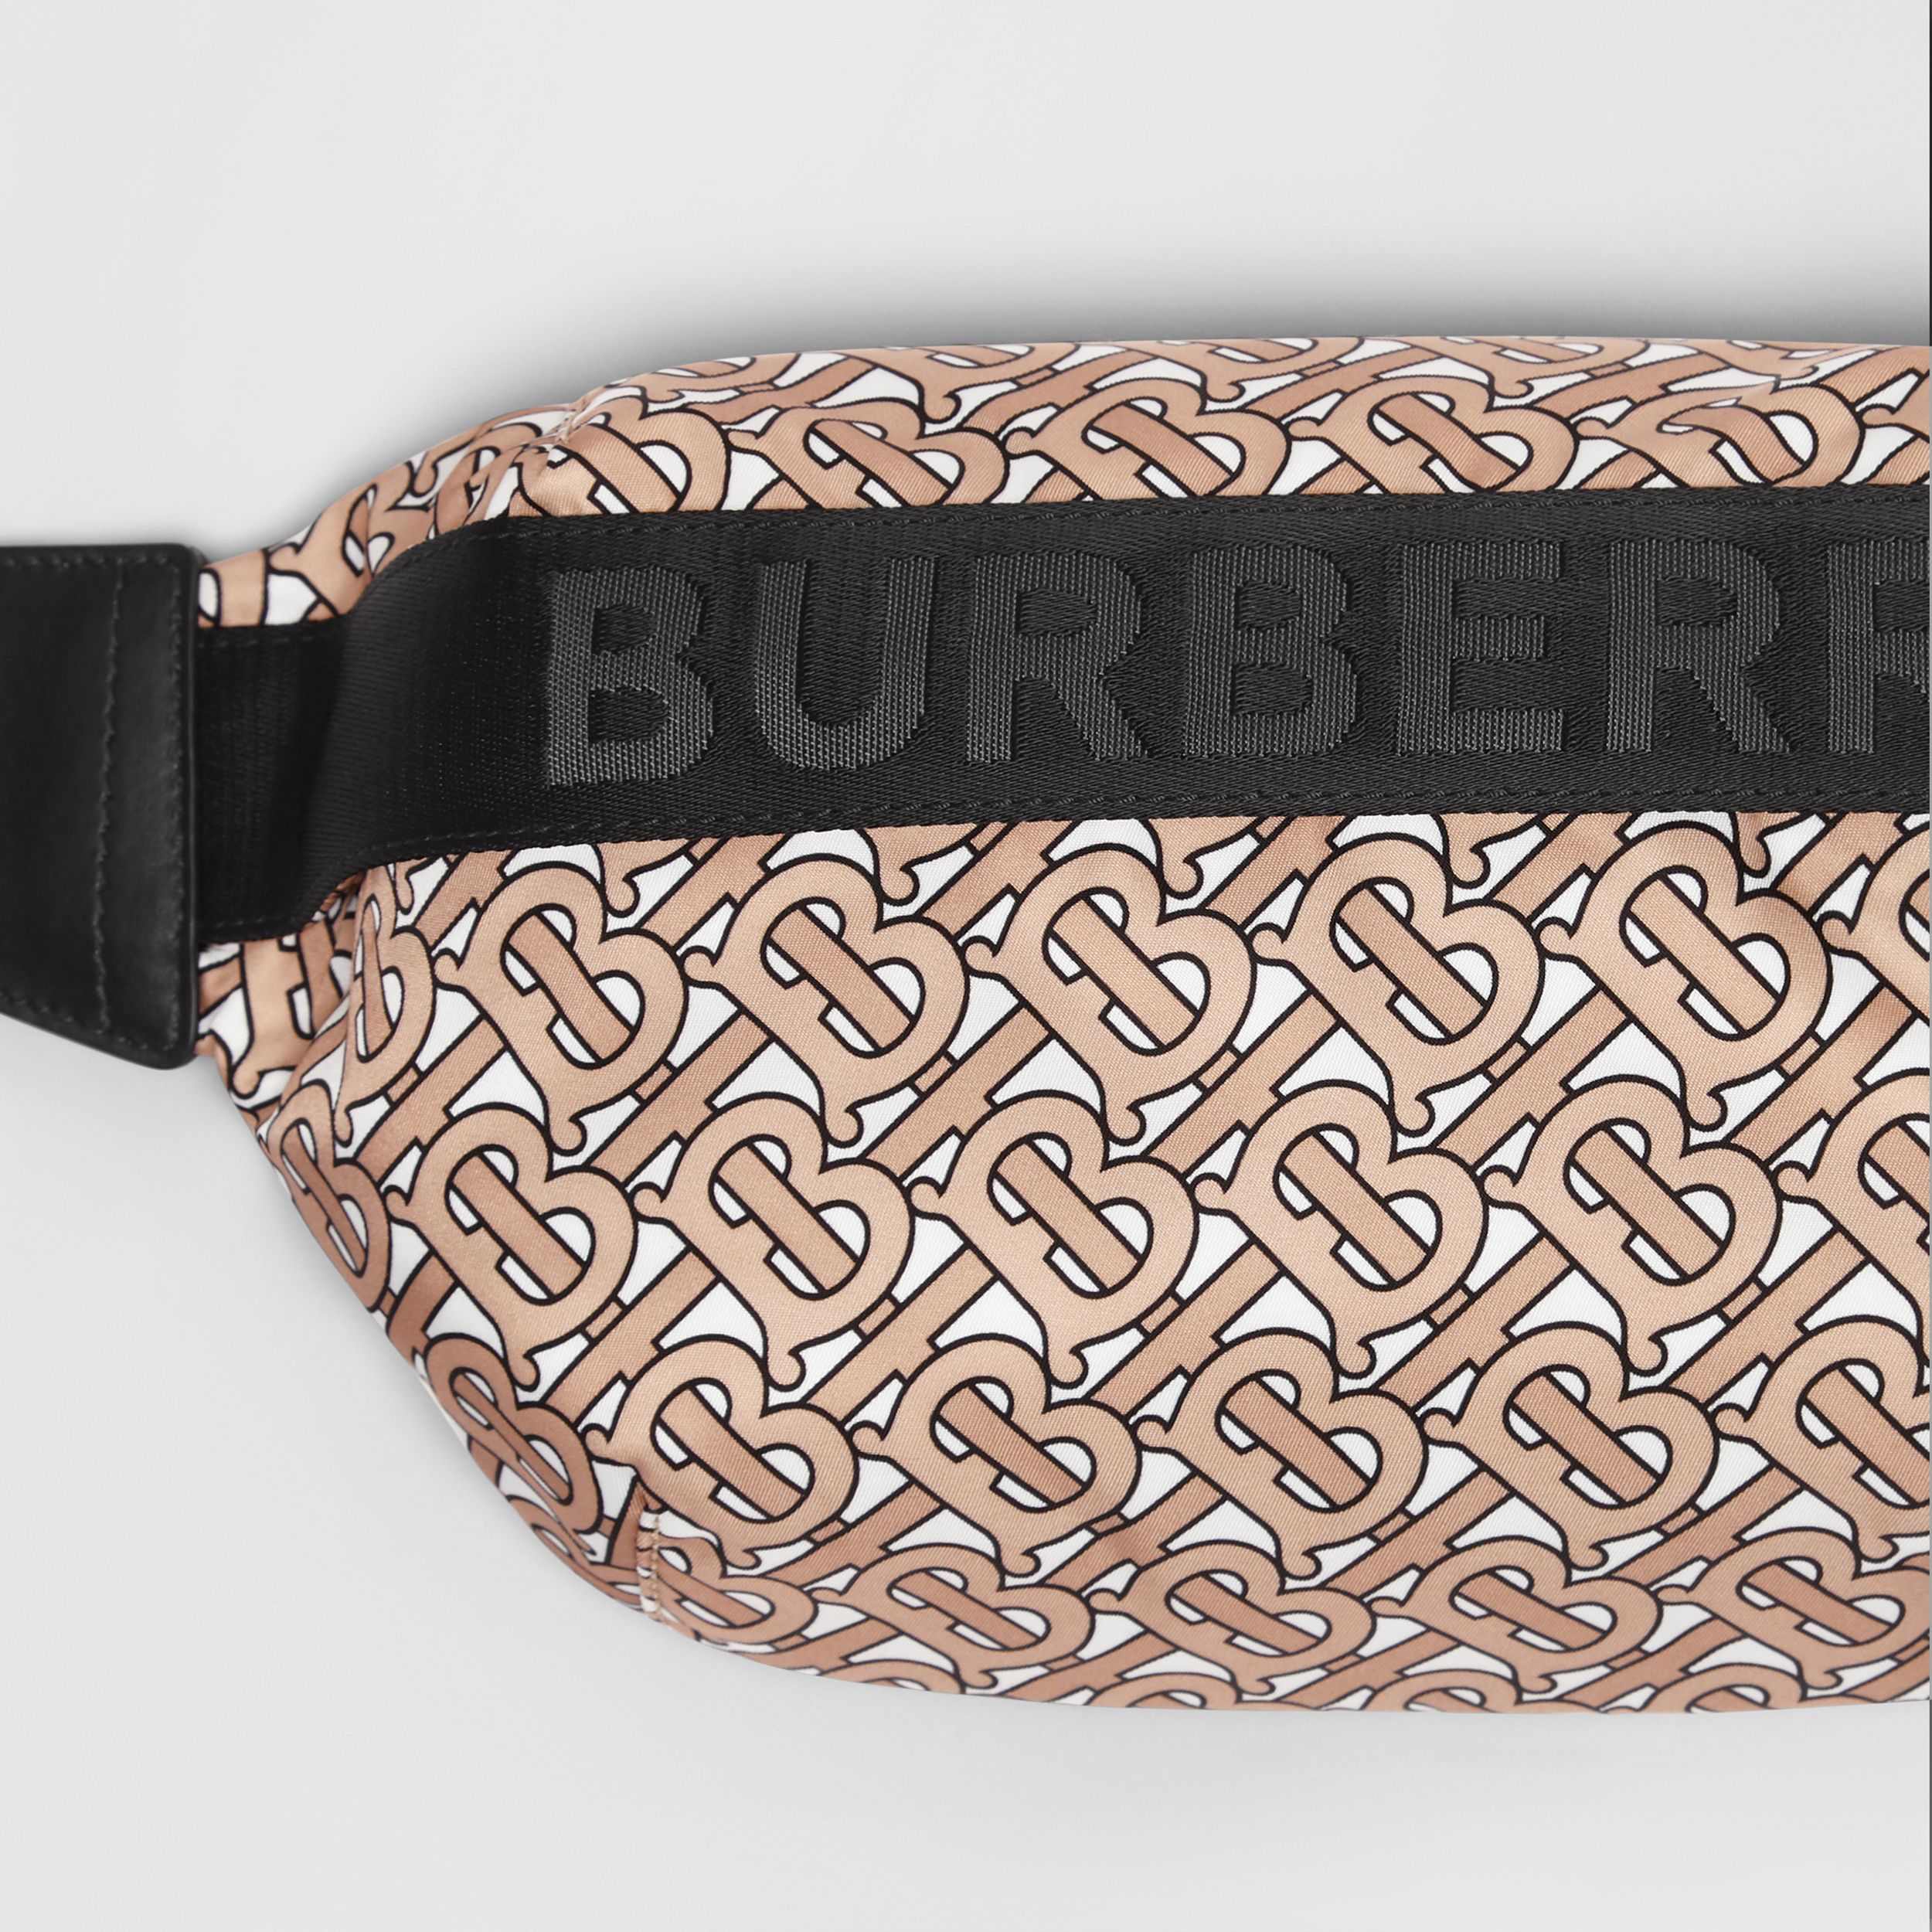 Medium Monogram Print Bum Bag in Beige | Burberry - 2